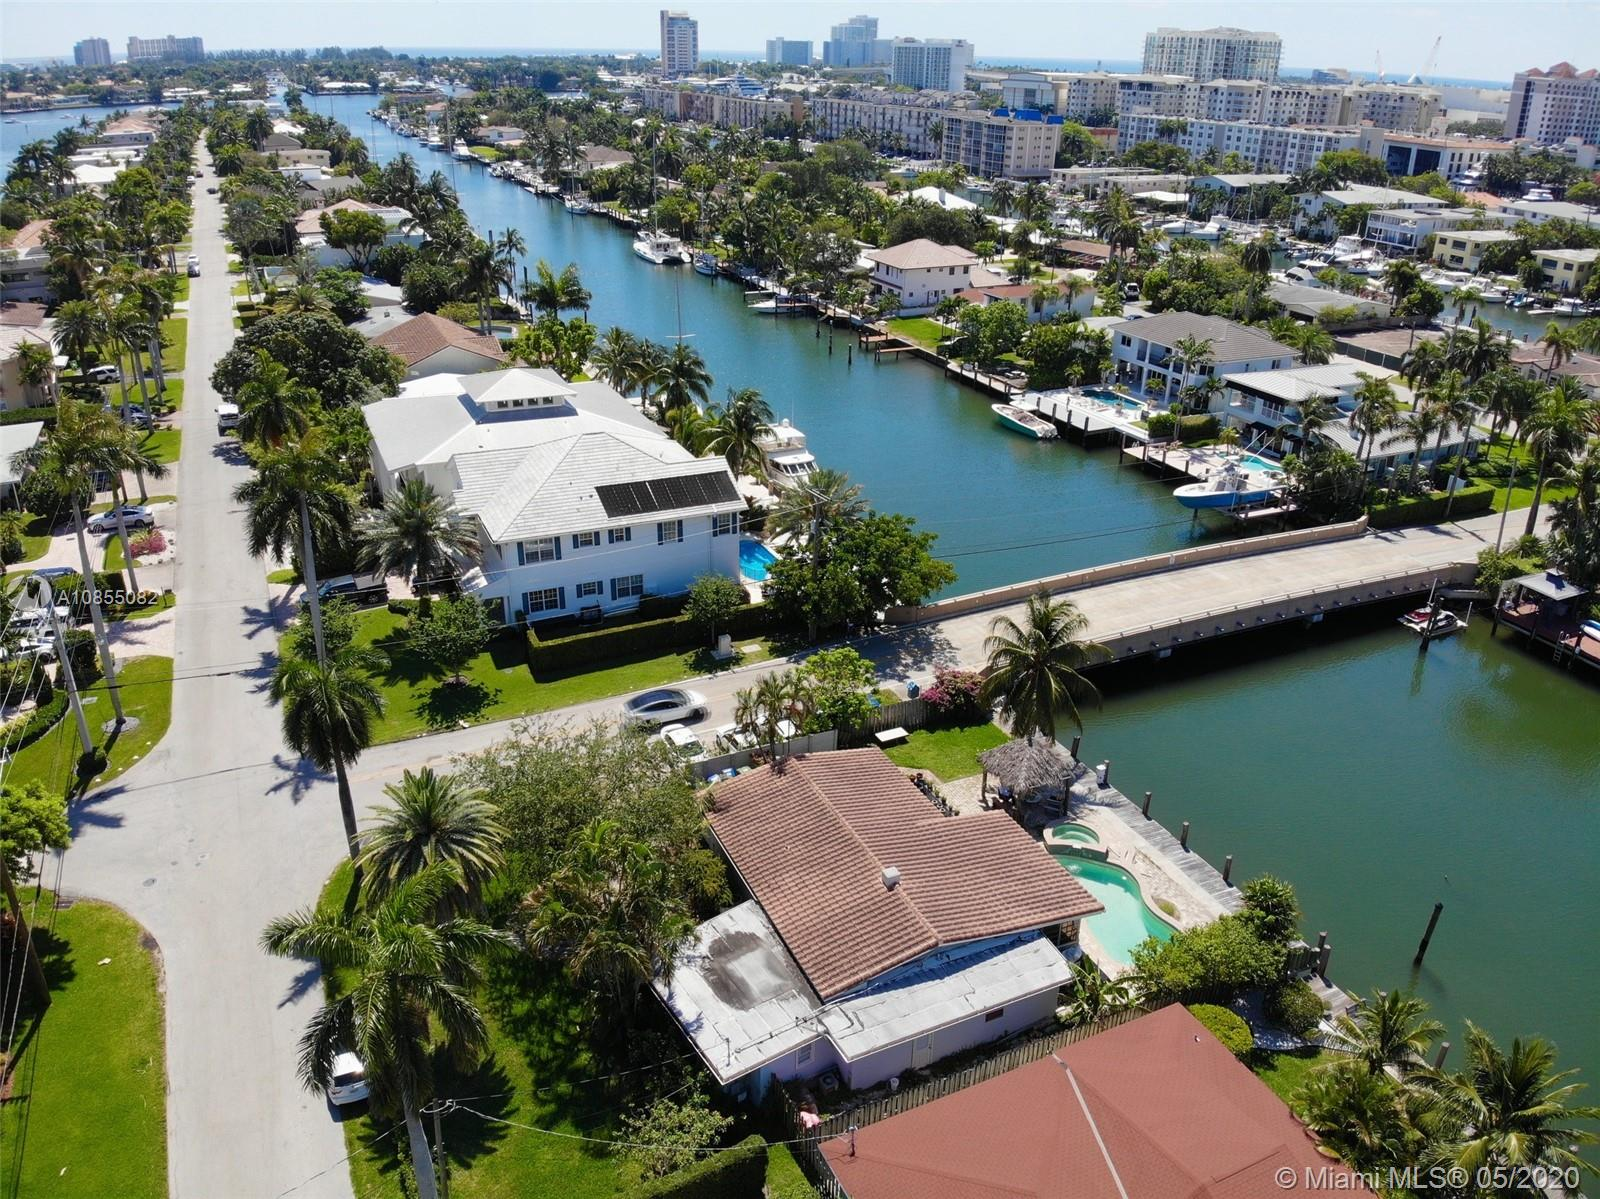 """BOATERS AND YACHT OWNERS TAKE NOTICE!! EXCELLENT OPPORTUNITY TO BUY THIS WATERFRONT RESIDENCE IN THE HEART OF LAUDERDALE HARBORS ON 80"""" OF DEEP-WATER AND EITHER REMODEL OR CONSTRUCT A NEW HOME. EXTREMELY CLOSE OCEAN ACCESS AND LOCATED ON A WIDE CANAL CAN ACCOMMODATE A CATAMARAN OR SEVERAL BOATS STERN TO DOCK FOR YOUR BAHAMIAN GETAWAY. ONLY ONE CANAL AWAY FROM THE ENTRY TO PORT EVERGLADES AND OCEAN. ENJOY THE SOUTHERN EXPOSURE POOL & SPA. ROOF NEW IN 2006, HEAT REFLECTIVE TILES AND INSULATED. UPDATED INTERIOR 2 MASTER SUITES. OPEN FLOOR PLAN. WALK TO LOCAL PUBS, SHOPS AND FINE DINING. THE EXISTING 2 BEDROOM/ 3 BATHS 1917 SQ. CORNER POOL HOME ON SITE COULD FEASIBLY BE RENOVATED!! EASY TO SHOW."""